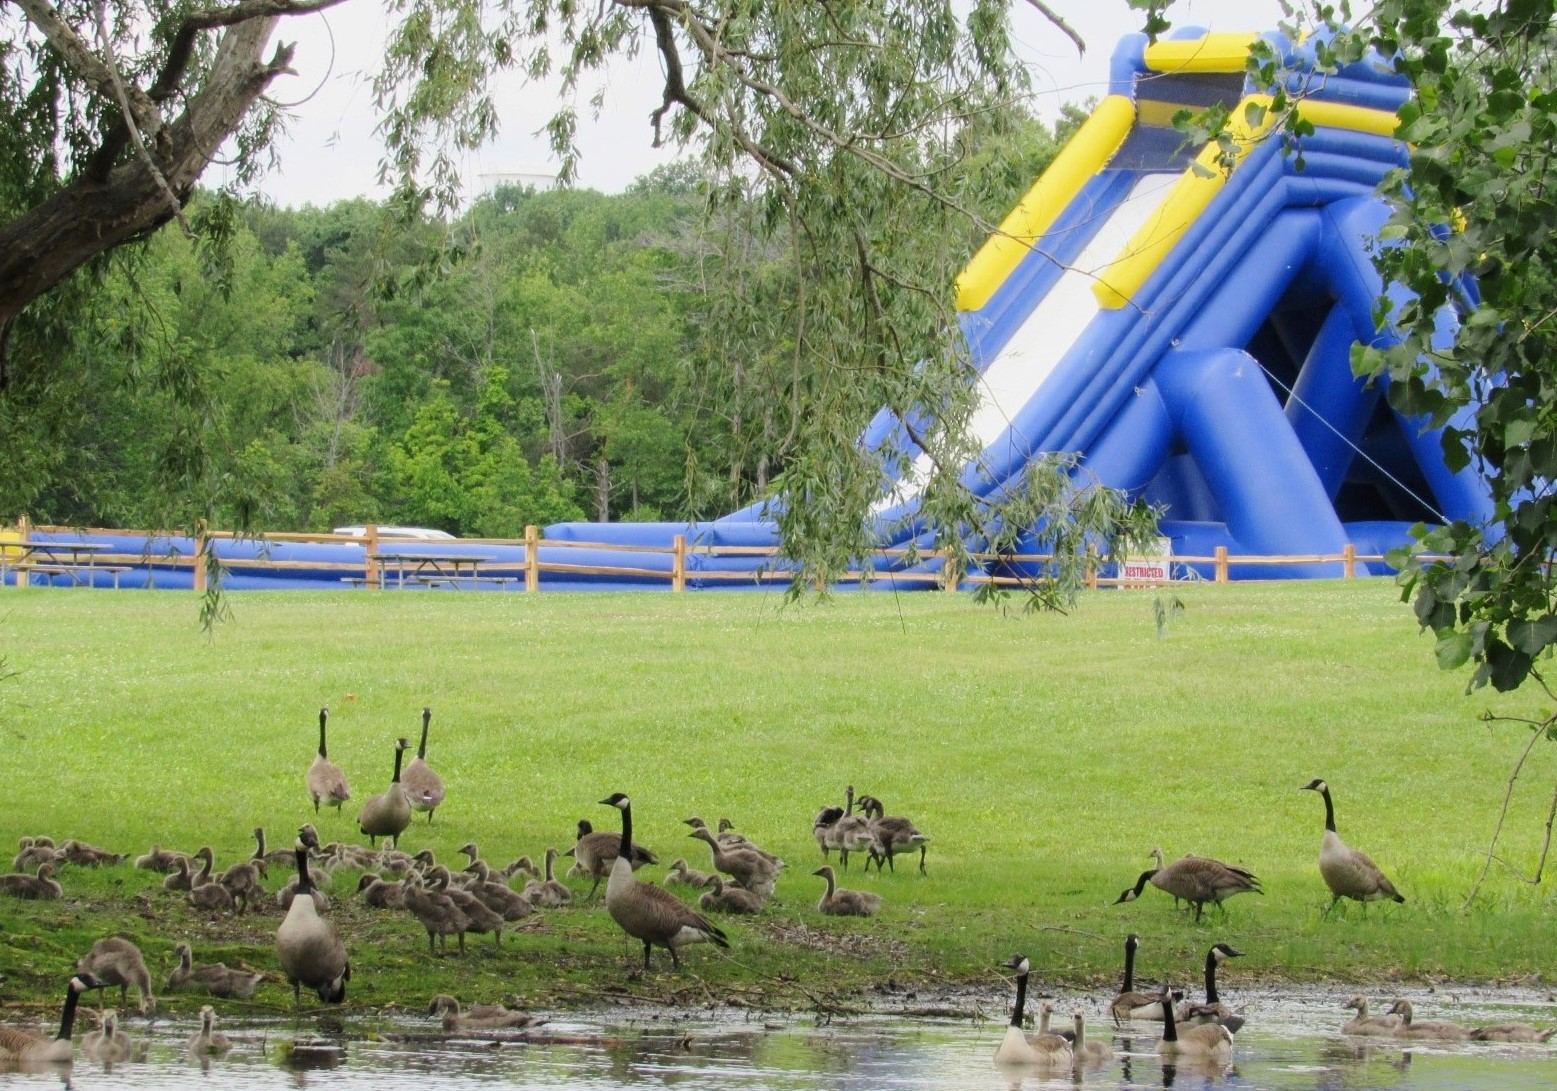 A large number of geese and goslings gathered at the edge of water. A giant inflatable slide is several yards behind them.